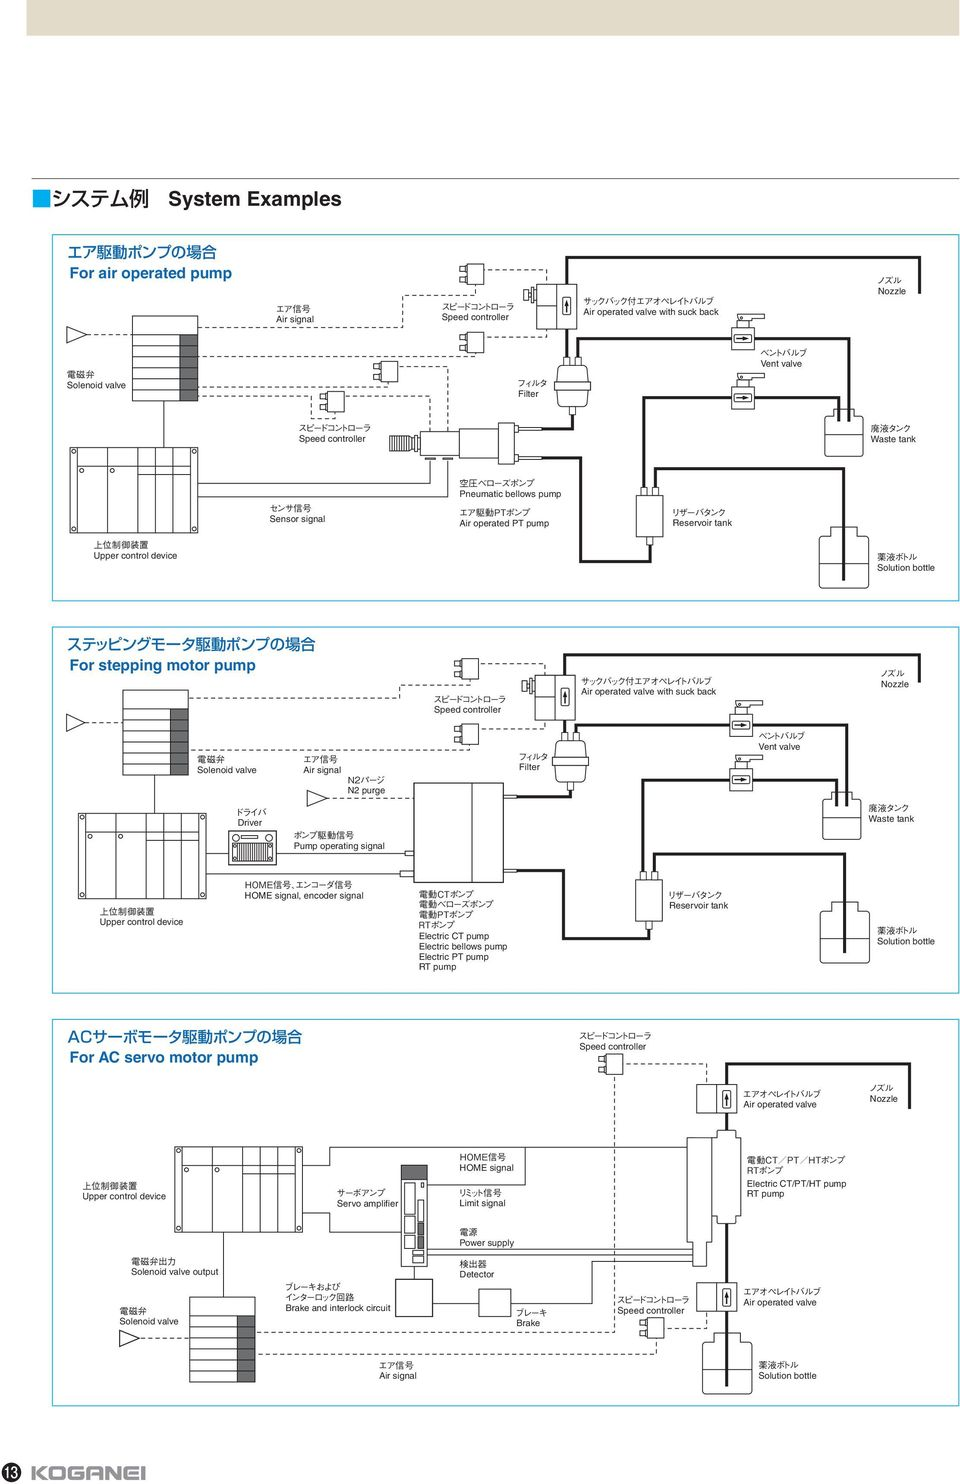 High Precision Constant Dispensing Pump Series Features Of Koganei Air Receiver Tank Schematic Filter Vent Valve Driver Operating Signal Waste Upper Control Device Home Encoder